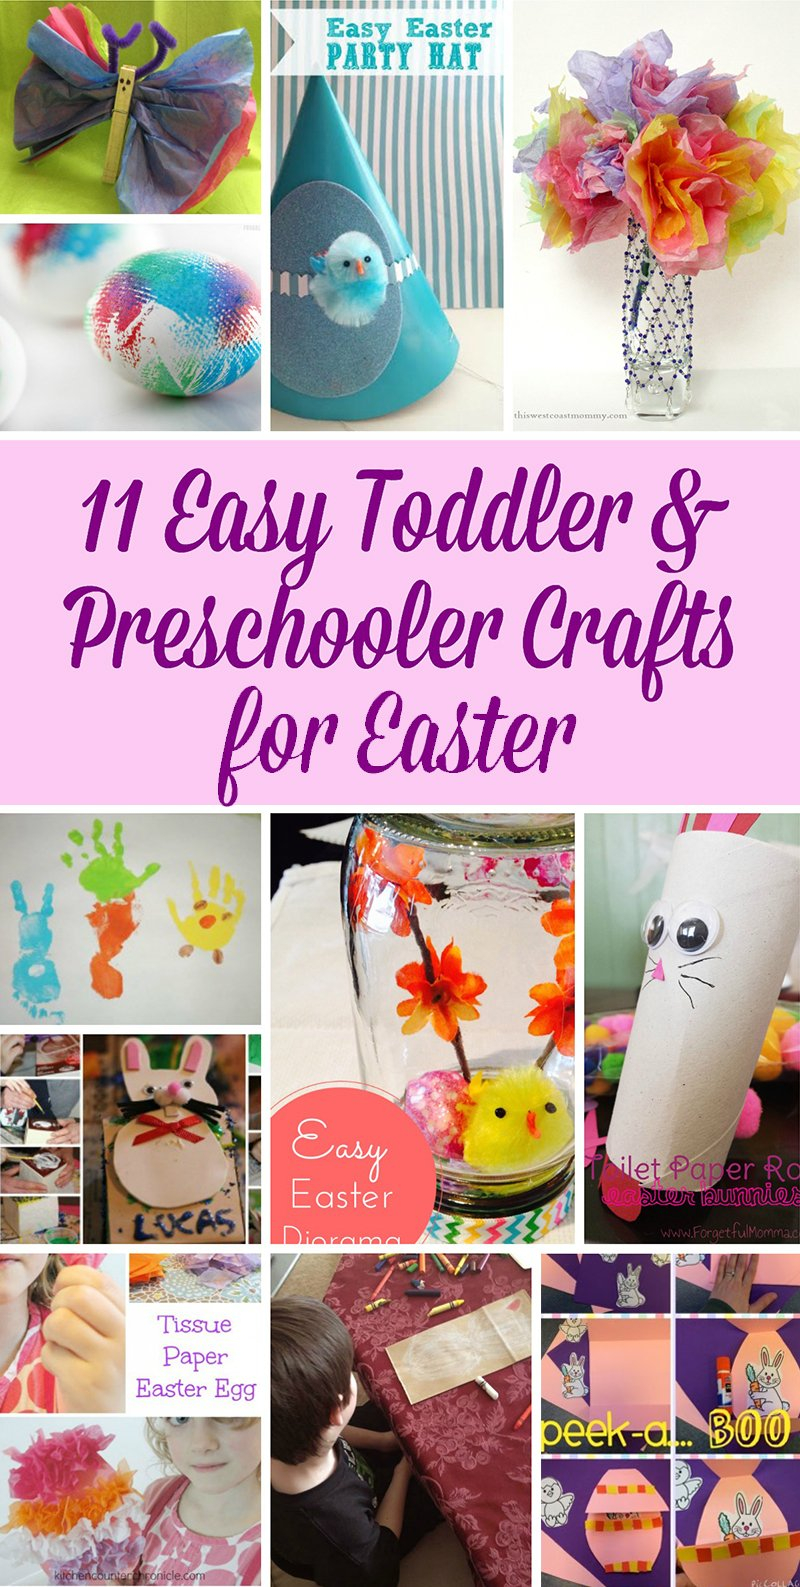 11 Easy Toddler And Preschooler Crafts For Easter This West Coast